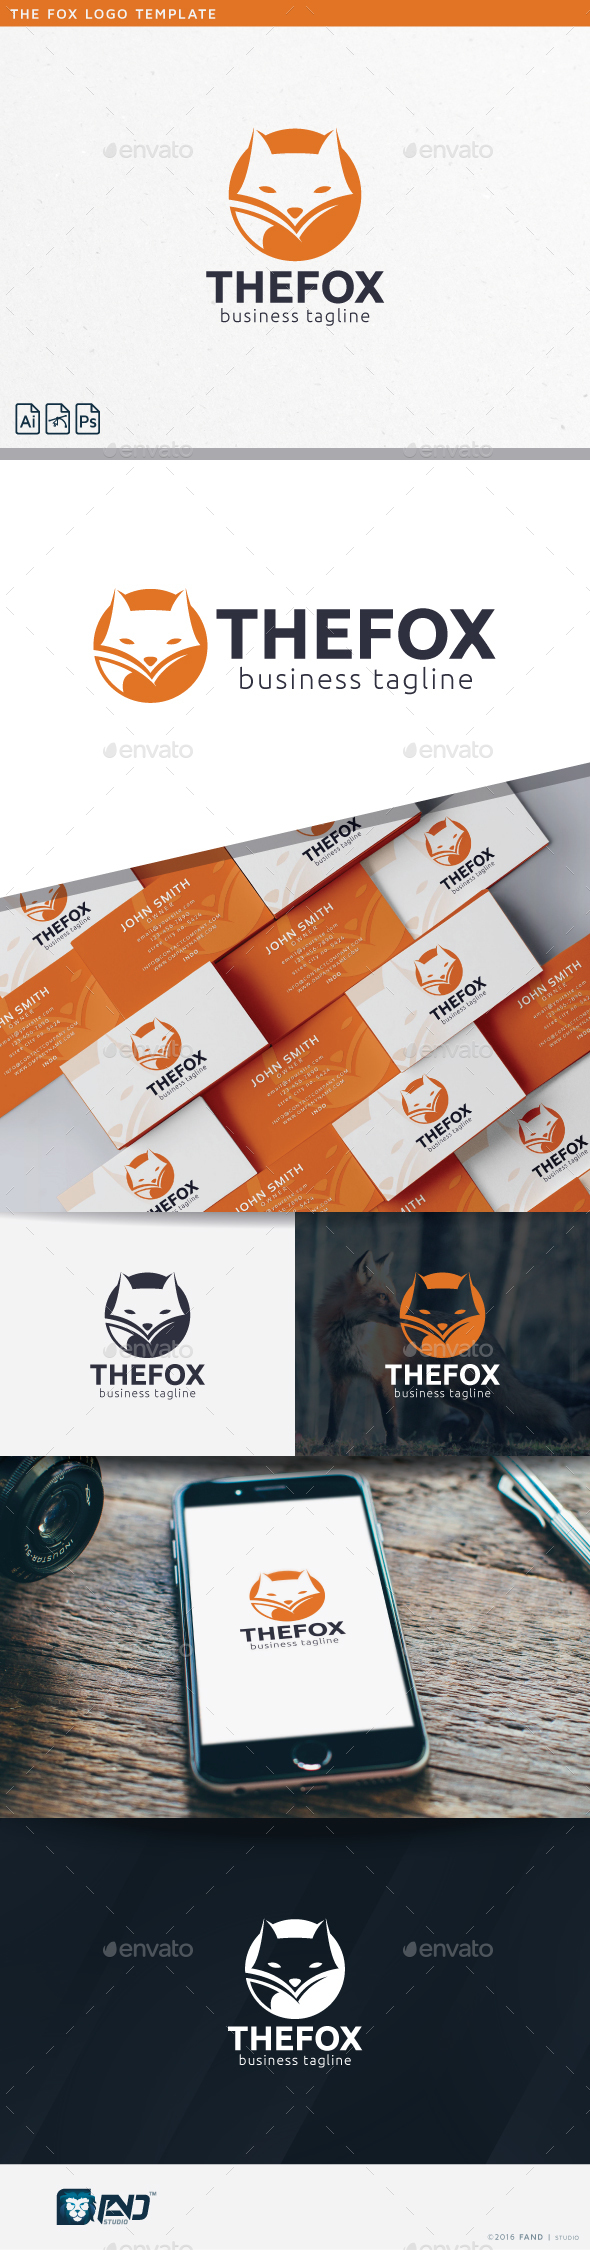 The Fox - Symbols Logo Templates